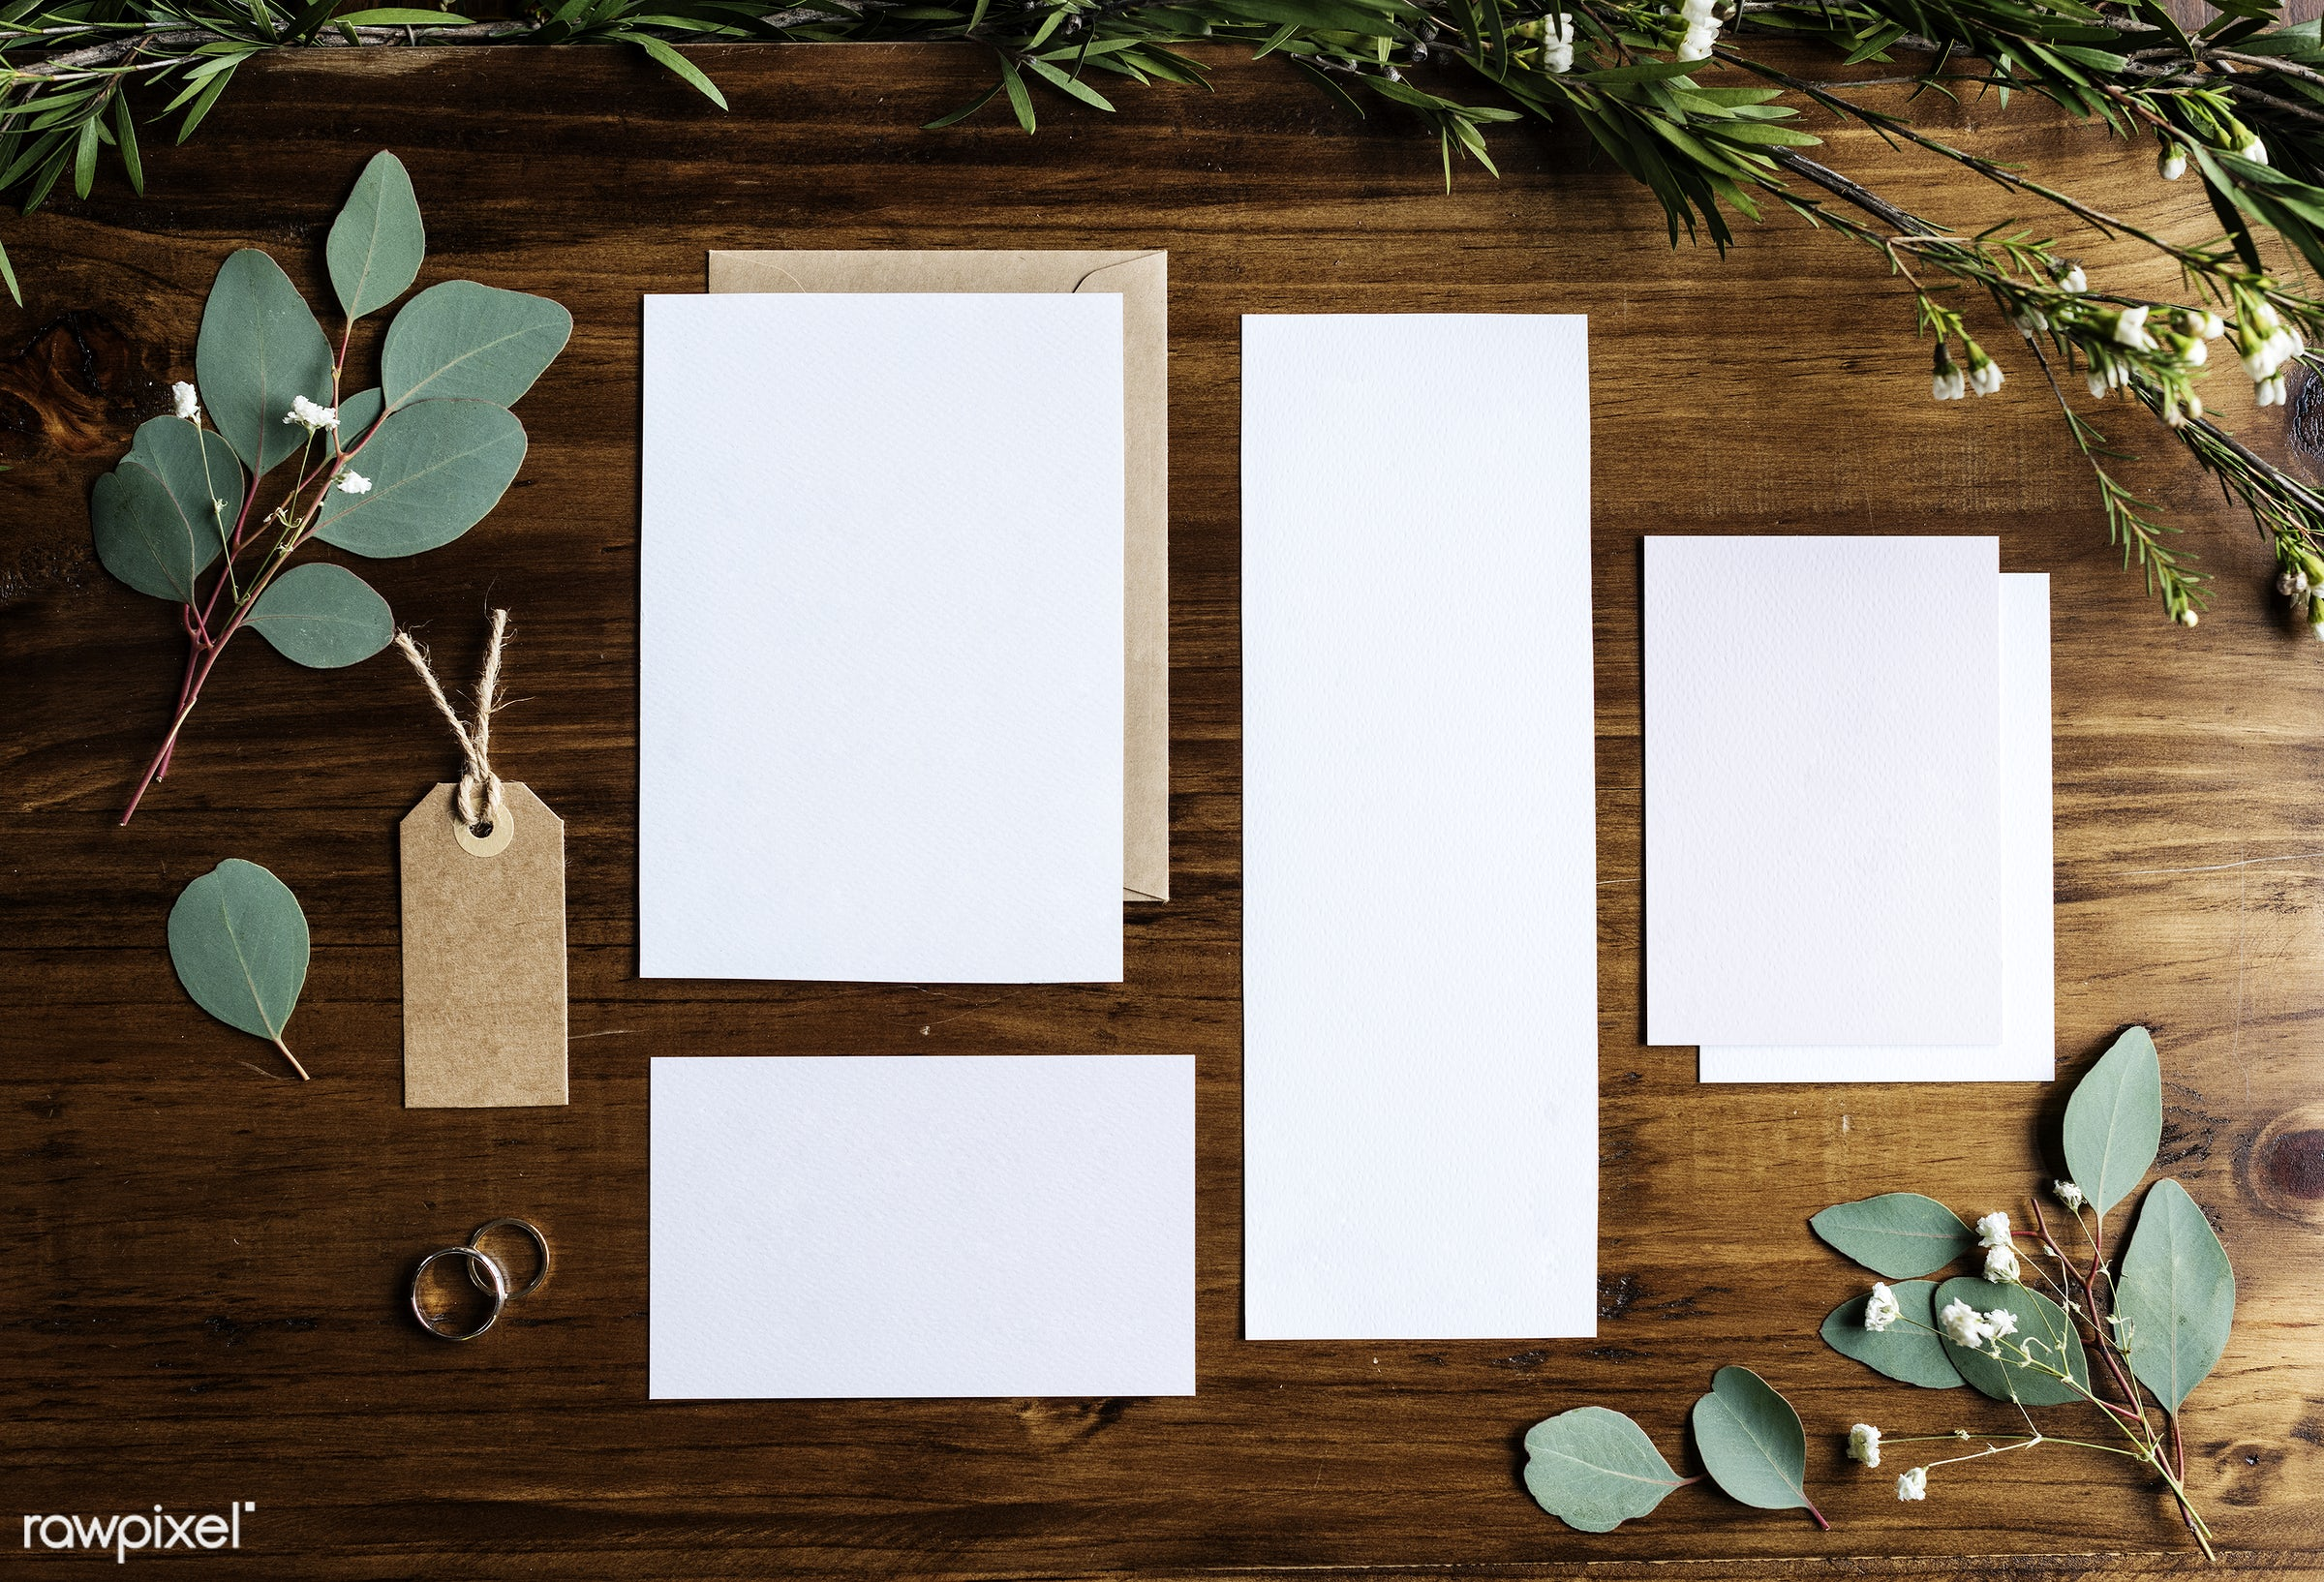 plant, white papers, nobody, copy space, paper, tag, mockup, show, desk, leaves, nature, communicate, empty, card, rings,...